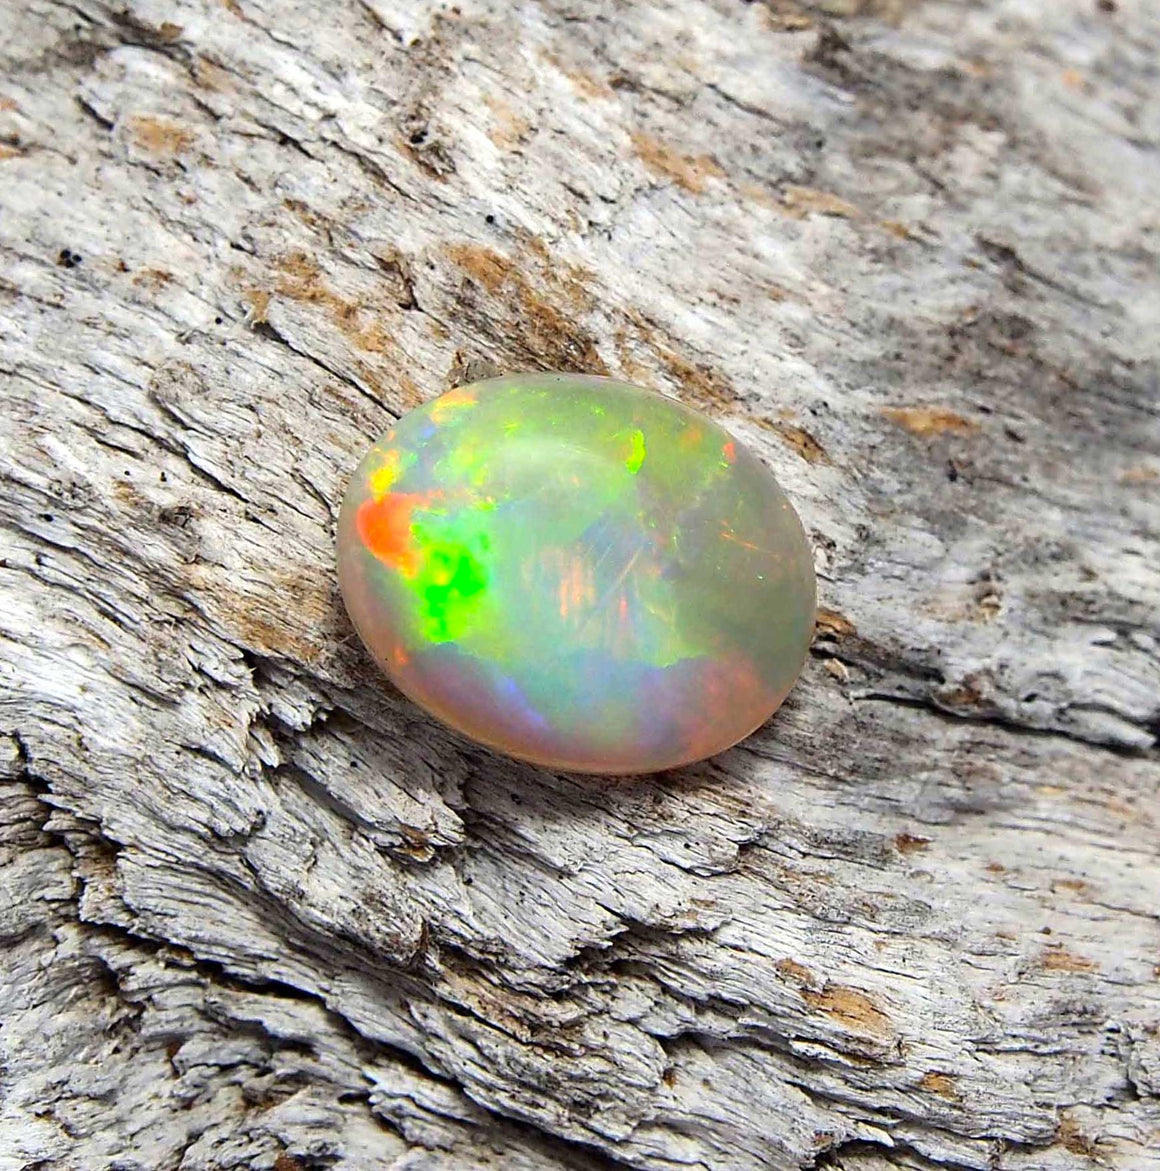 Beautiful Harlequin-patterned colourful oval Lightning Ridge solid crystal opal, ideal for a necklace pendant or ring setting